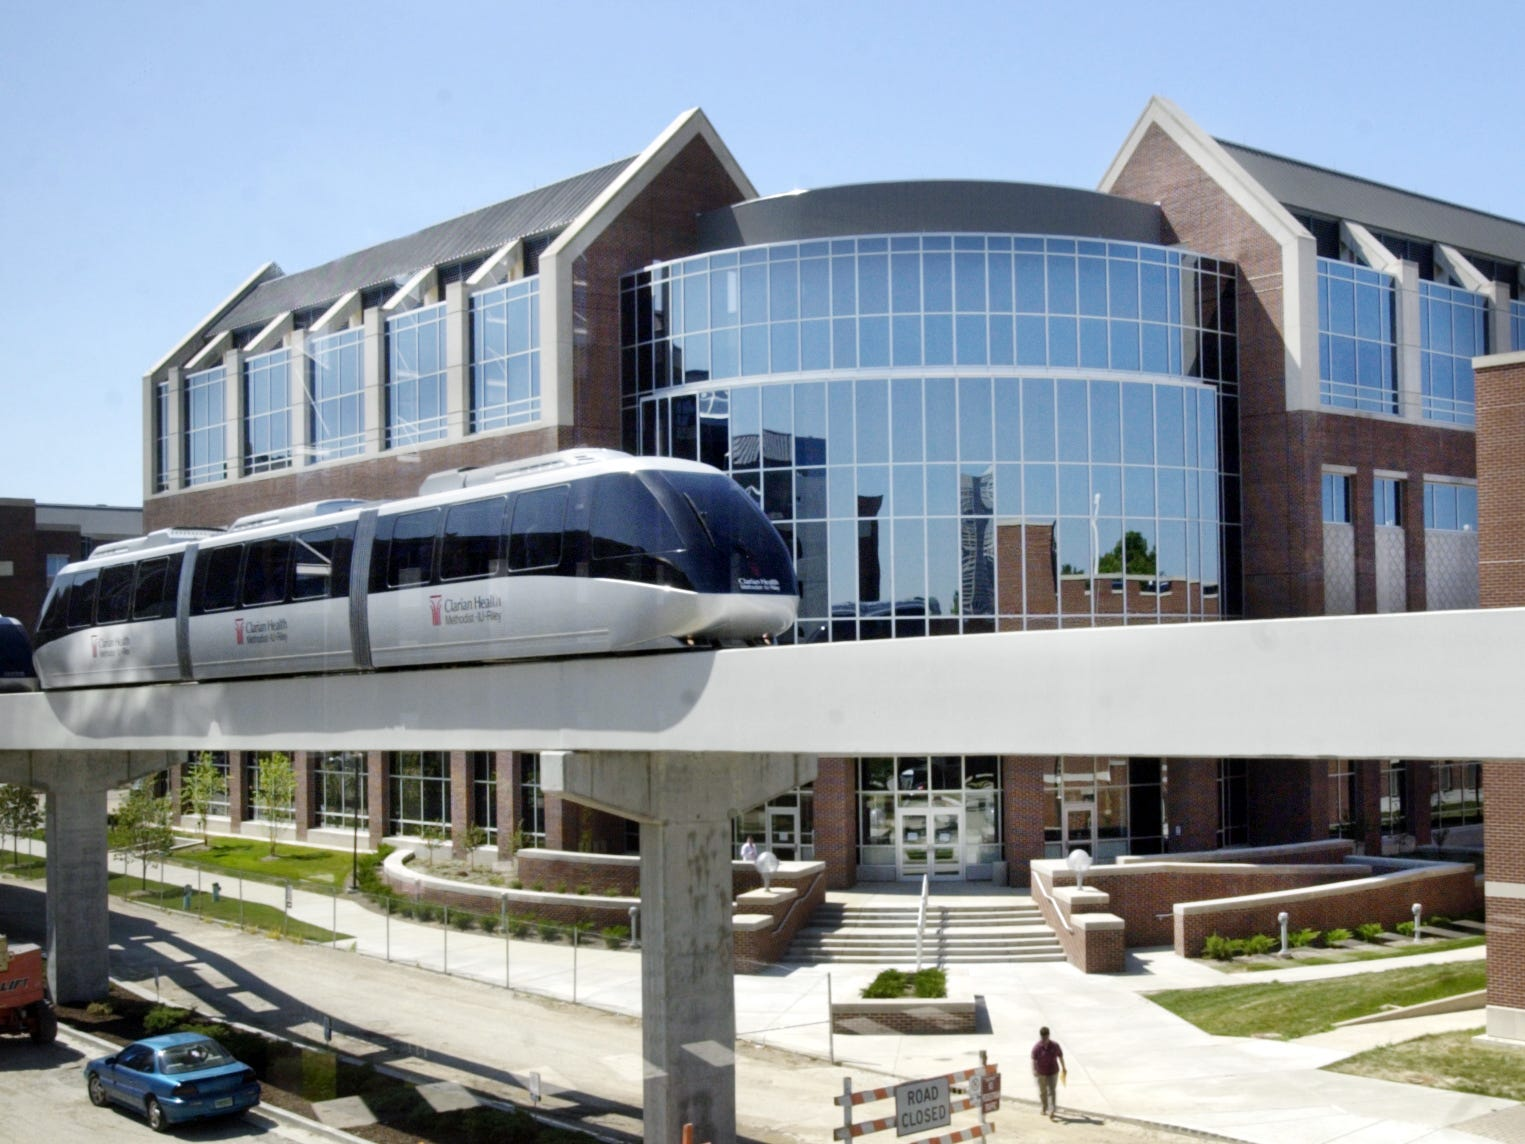 End of the line as IU Health's $44 million People Mover will move people no more